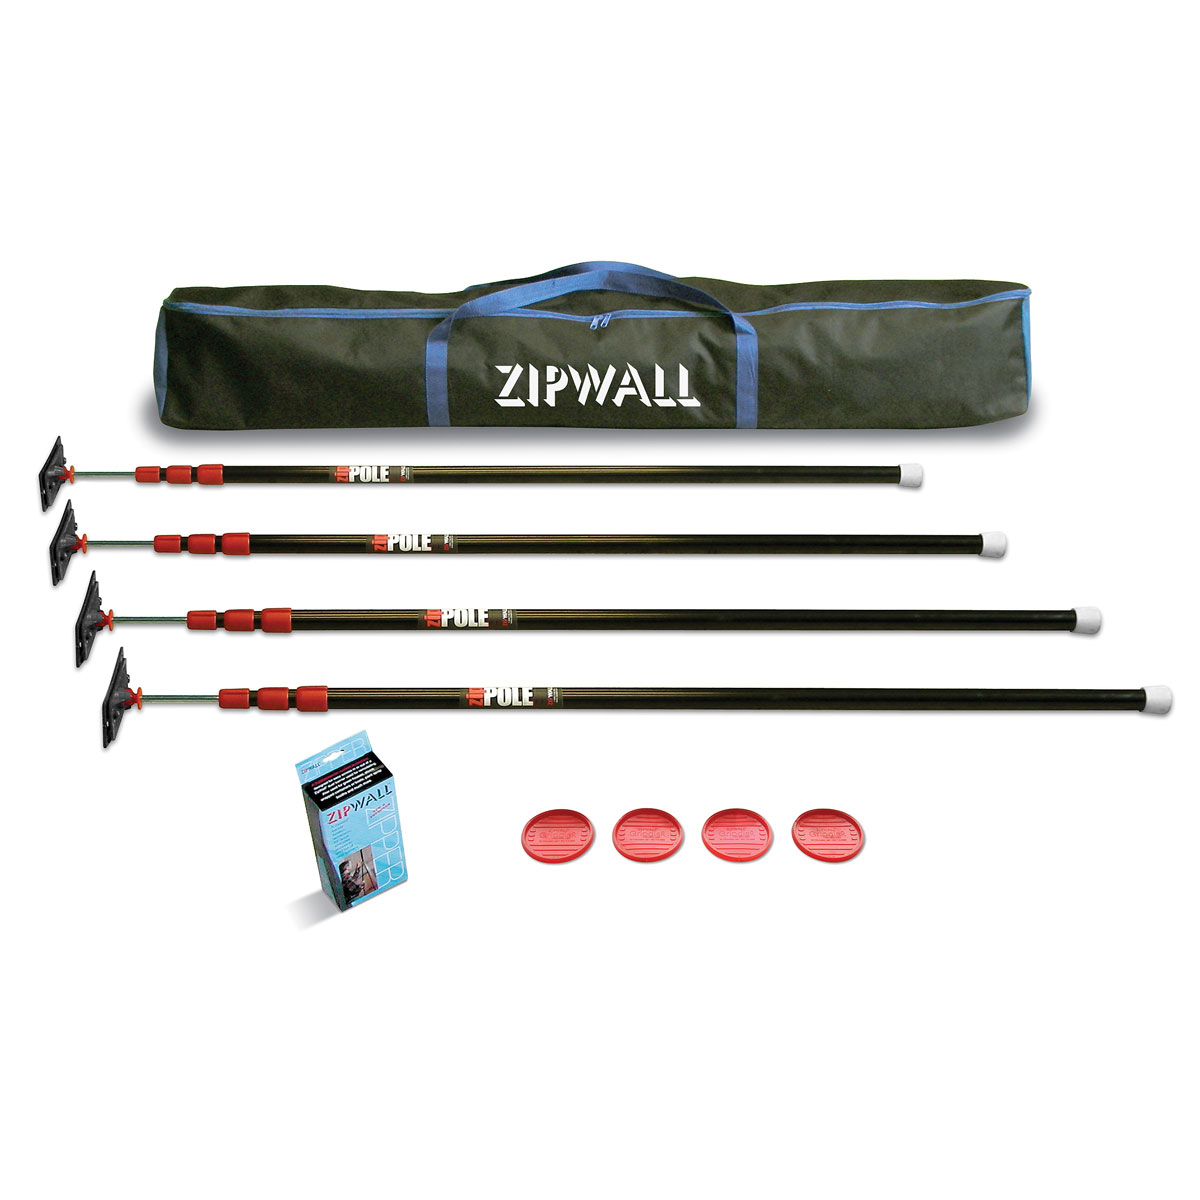 ZipWall ZP4 ZipPole Spring Loaded Pole Dust Barrier Temporary Wall System - 4-Pack